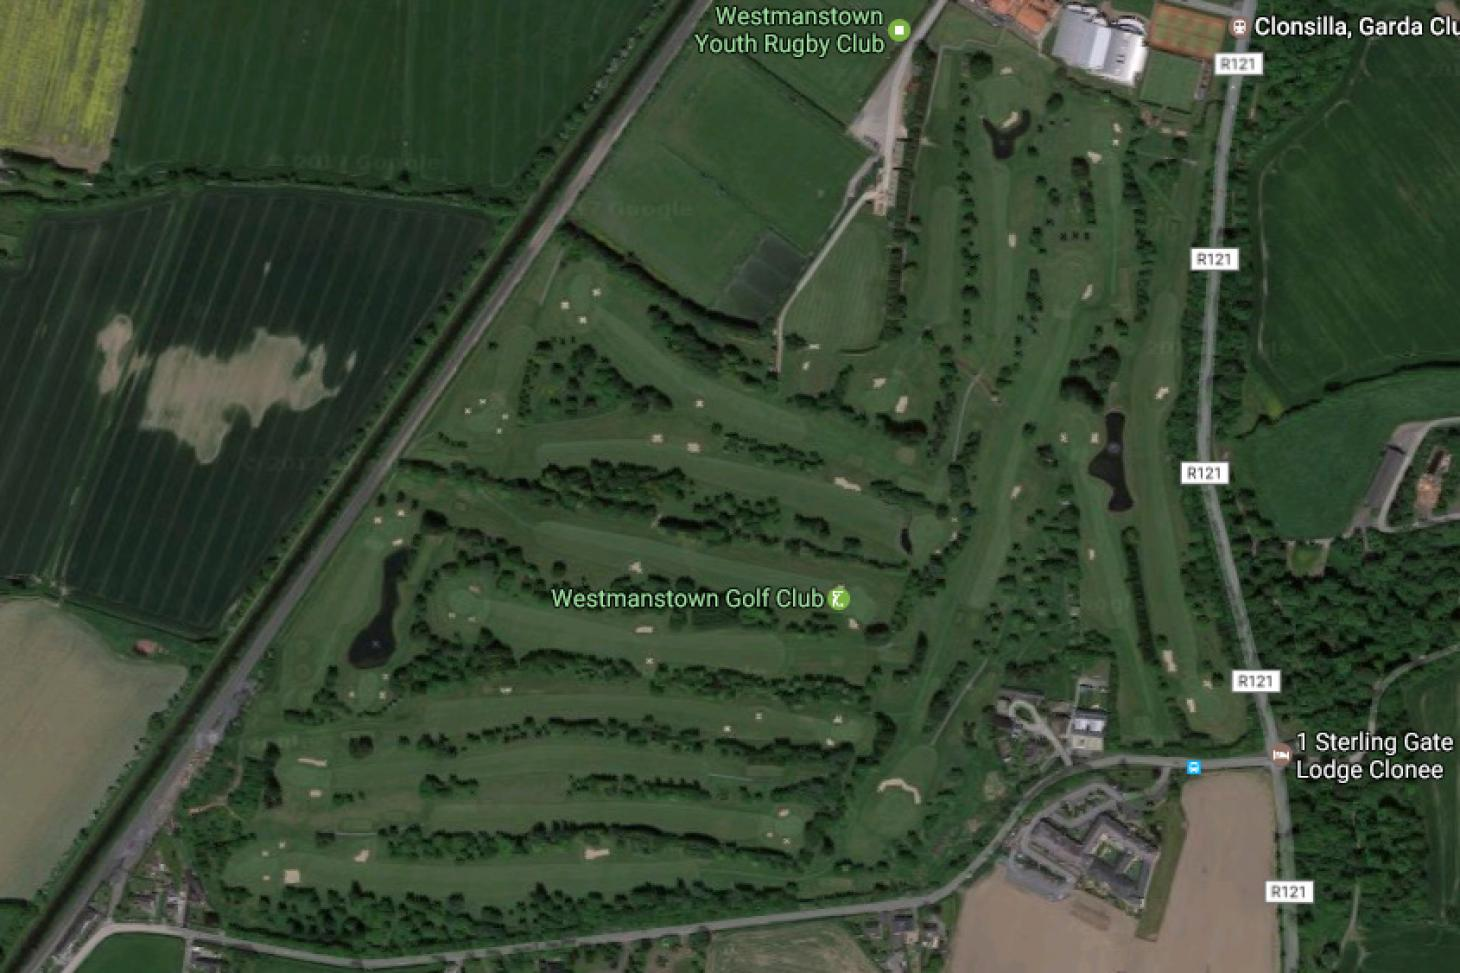 Westmanstown Sports & Conference Centre 18 hole | Yes golf course